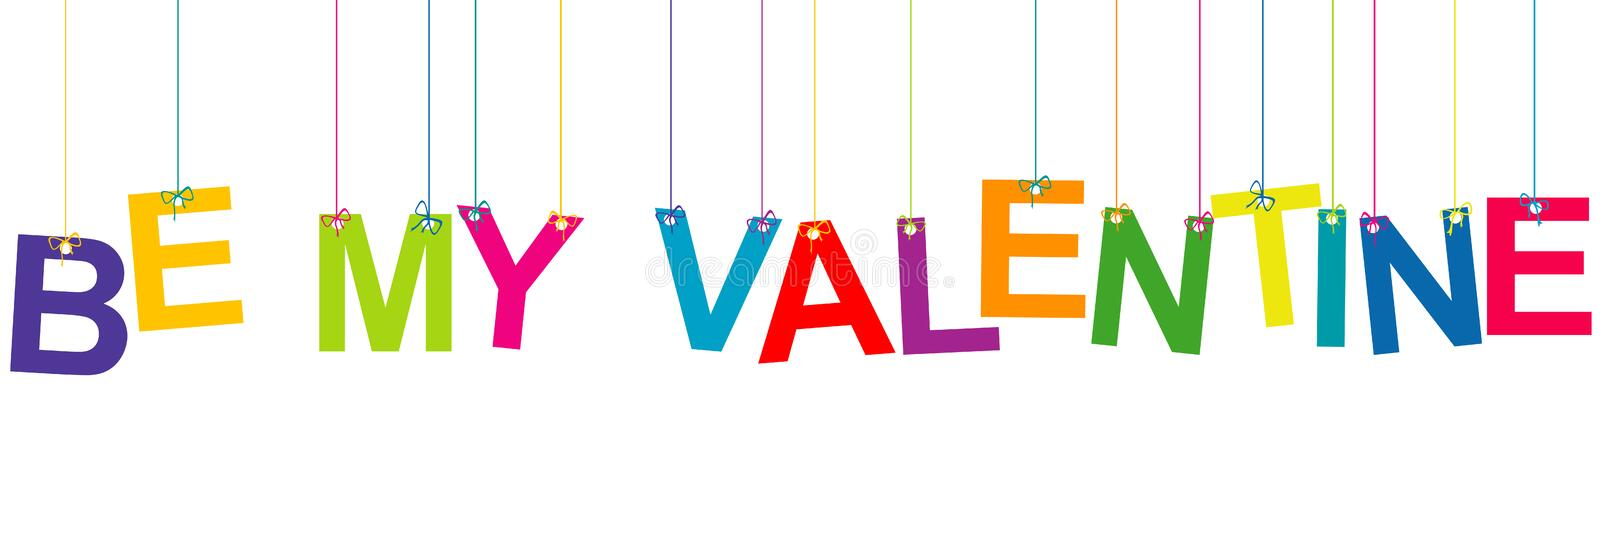 Be My Valentine Banner with hanging letters vector illustration